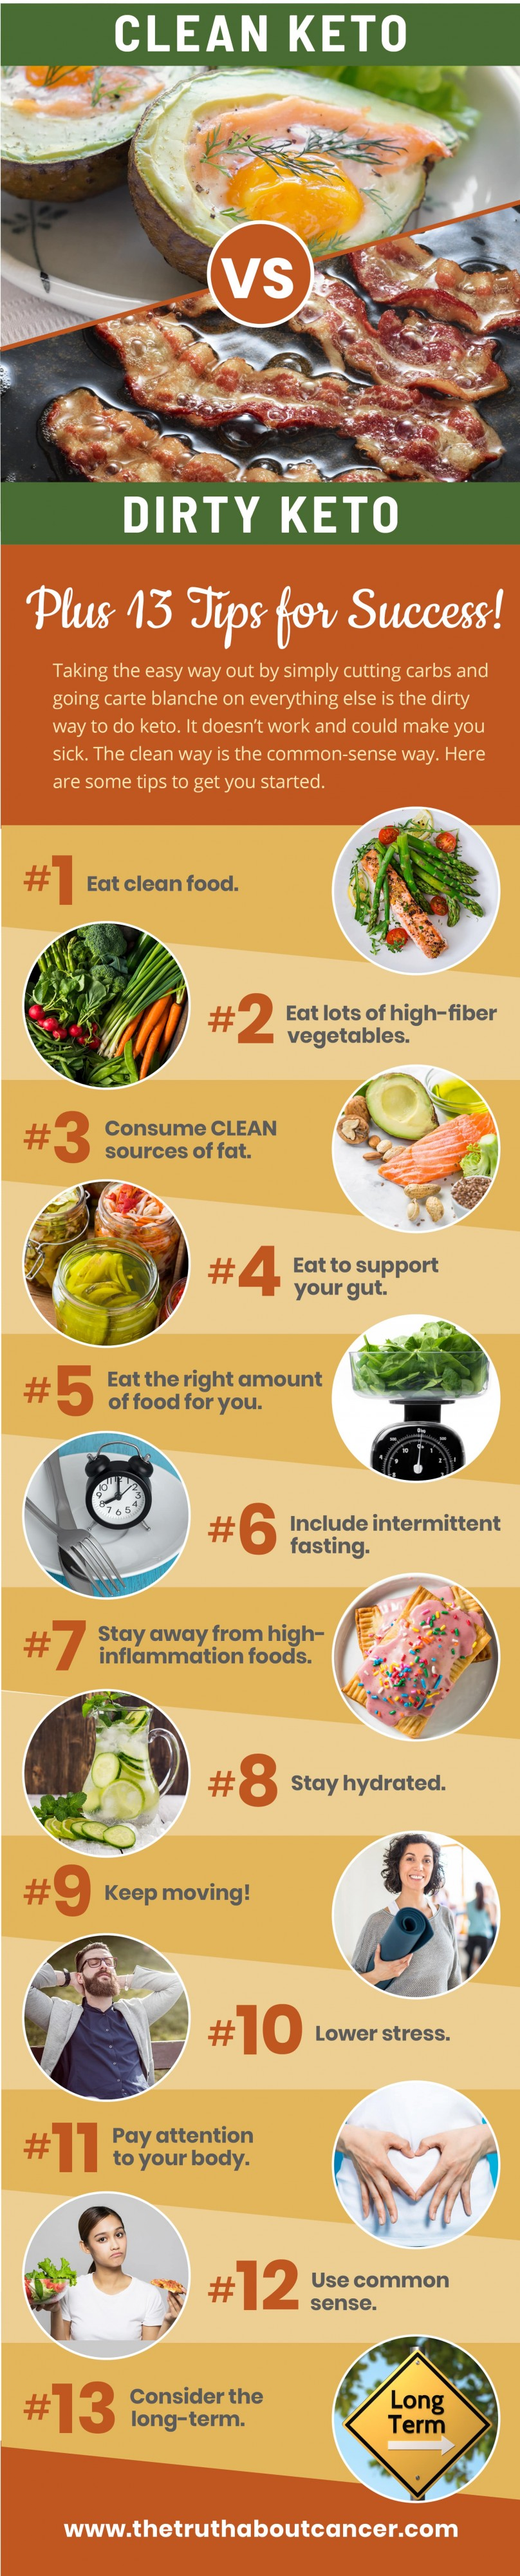 13 tips for clean keto diet